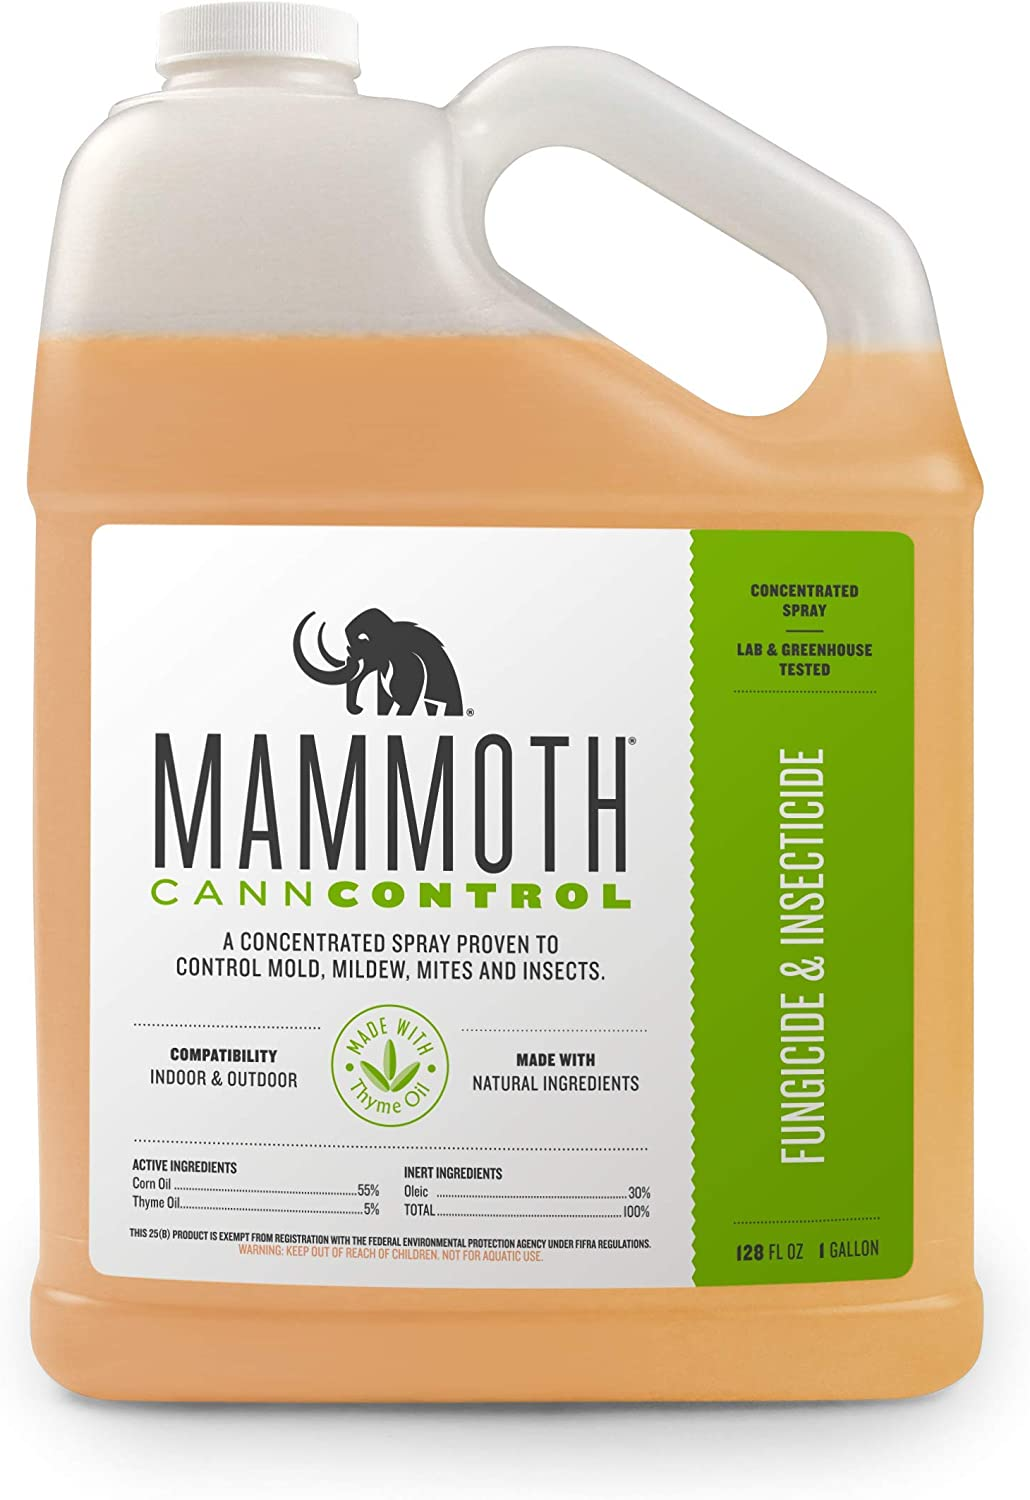 Mammoth CANNCONTROL Concentrated Insecticide Spray for Plants, Organic Pesticides for Vegetable and Spider Mites Spray for Indoor Outdoor Plants (1 Gal)